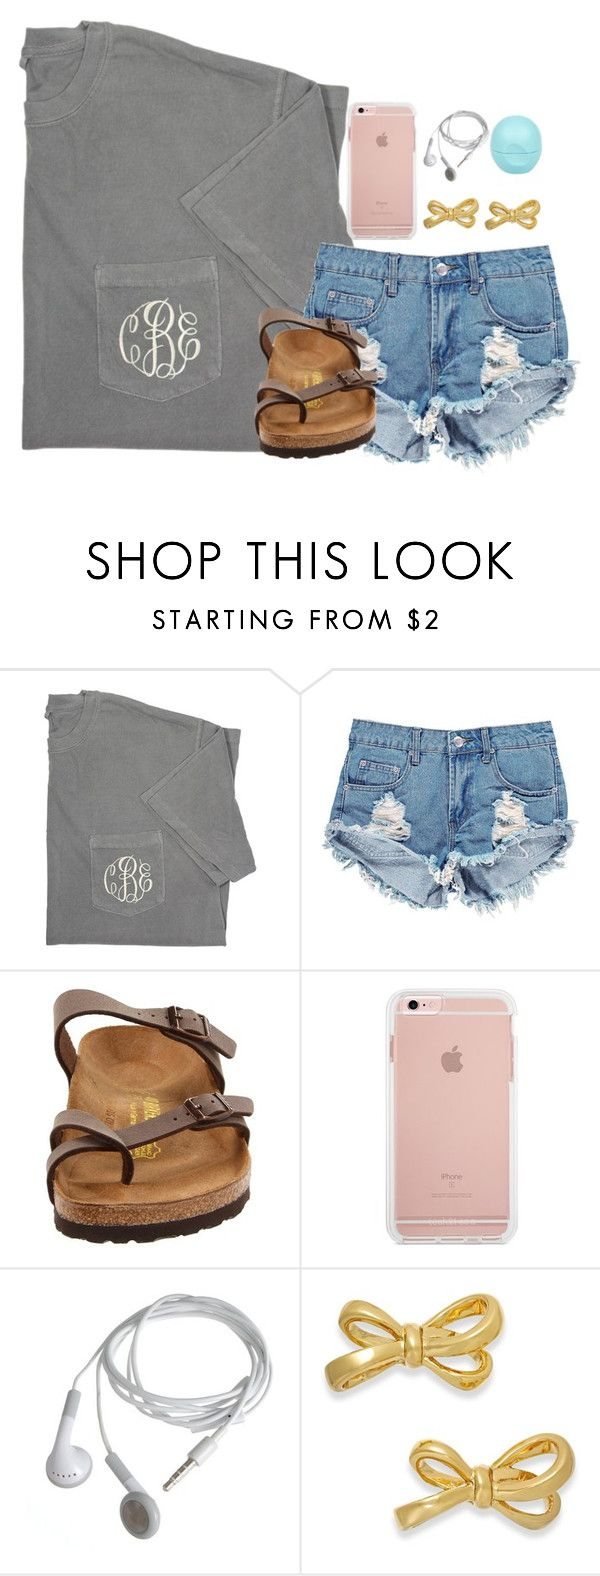 """Got a new Vera Bradley wallet the other day"" by mmprep ❤ liked on Polyvore featuring Boohoo, Birkenstock, Kate Spade and River Island"